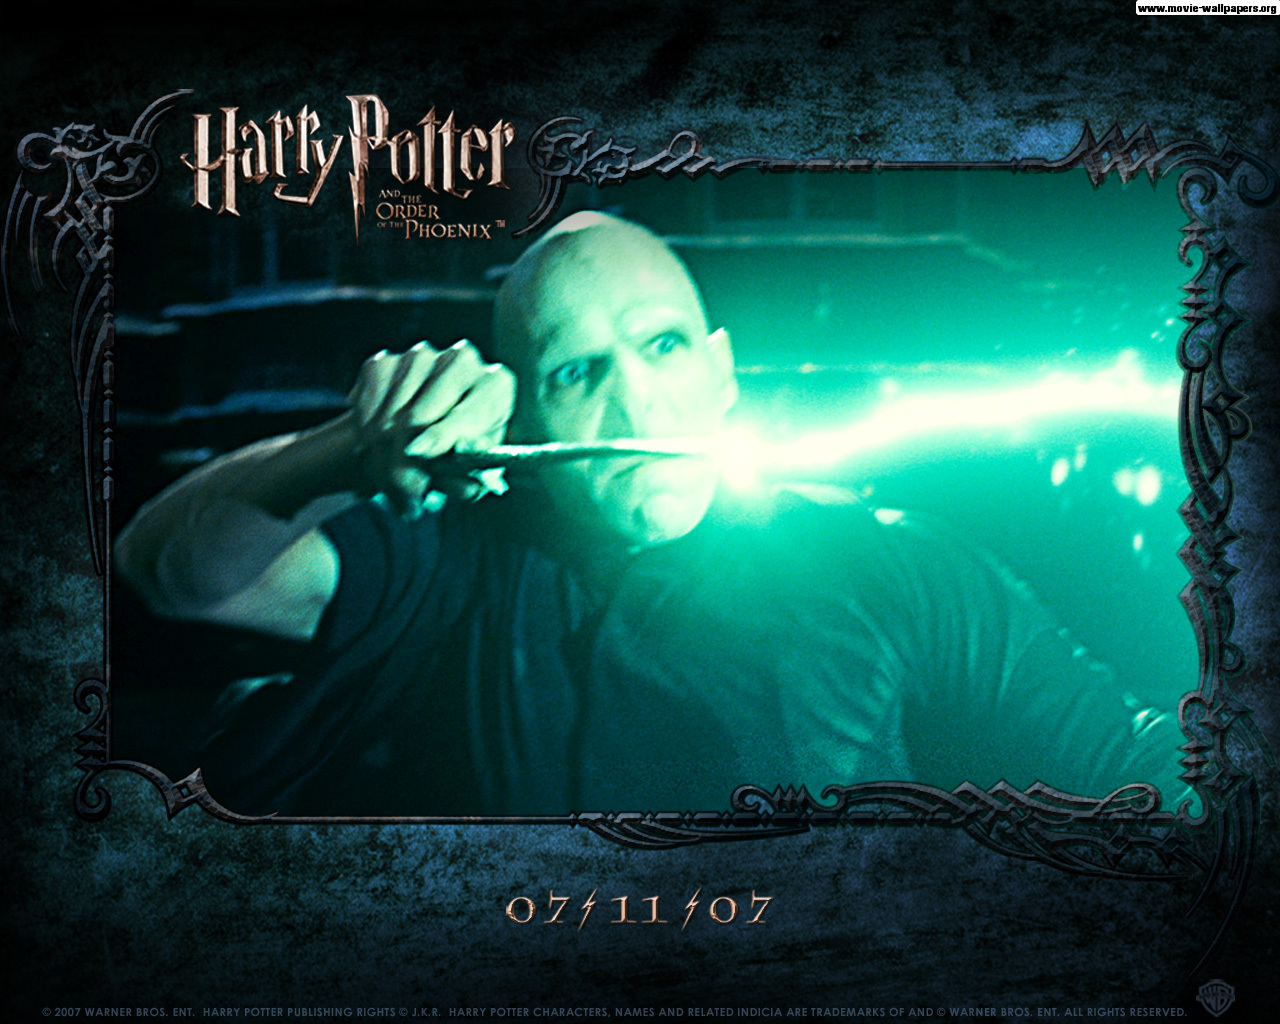 Harry Potter and the Order of the Phoenix - Movies Maniac1280 x 1024